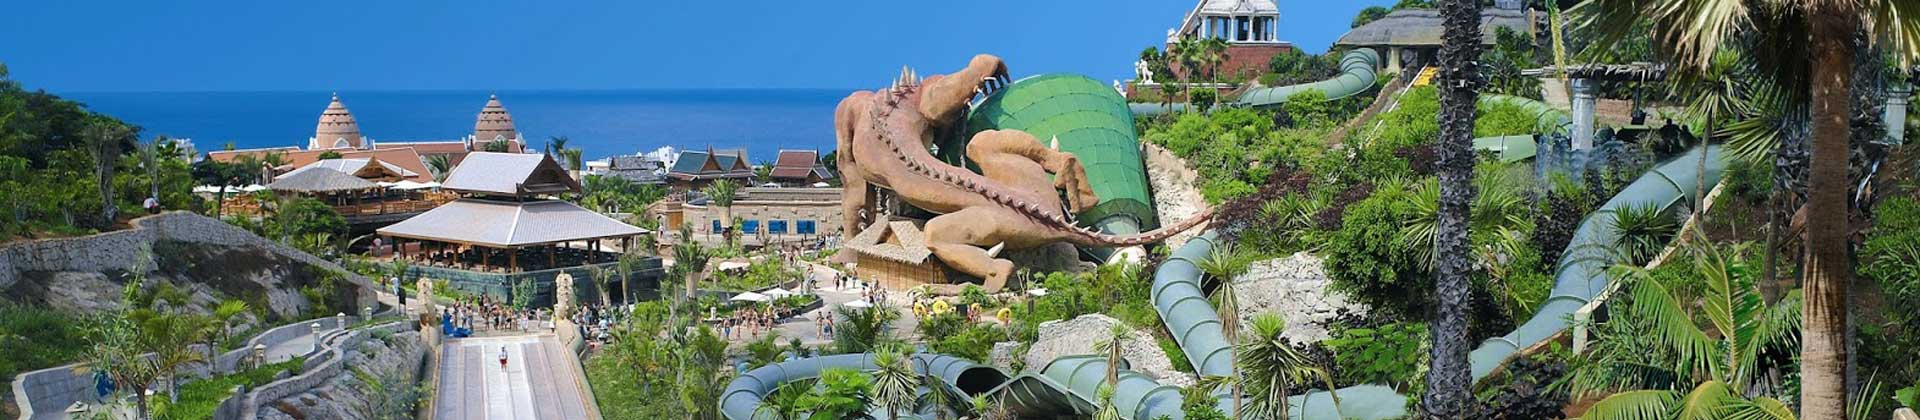 https://www.goodmorningtenerife.com/wp-content/uploads/2014/08/02_slide_parks_GM_Tenerife.jpg